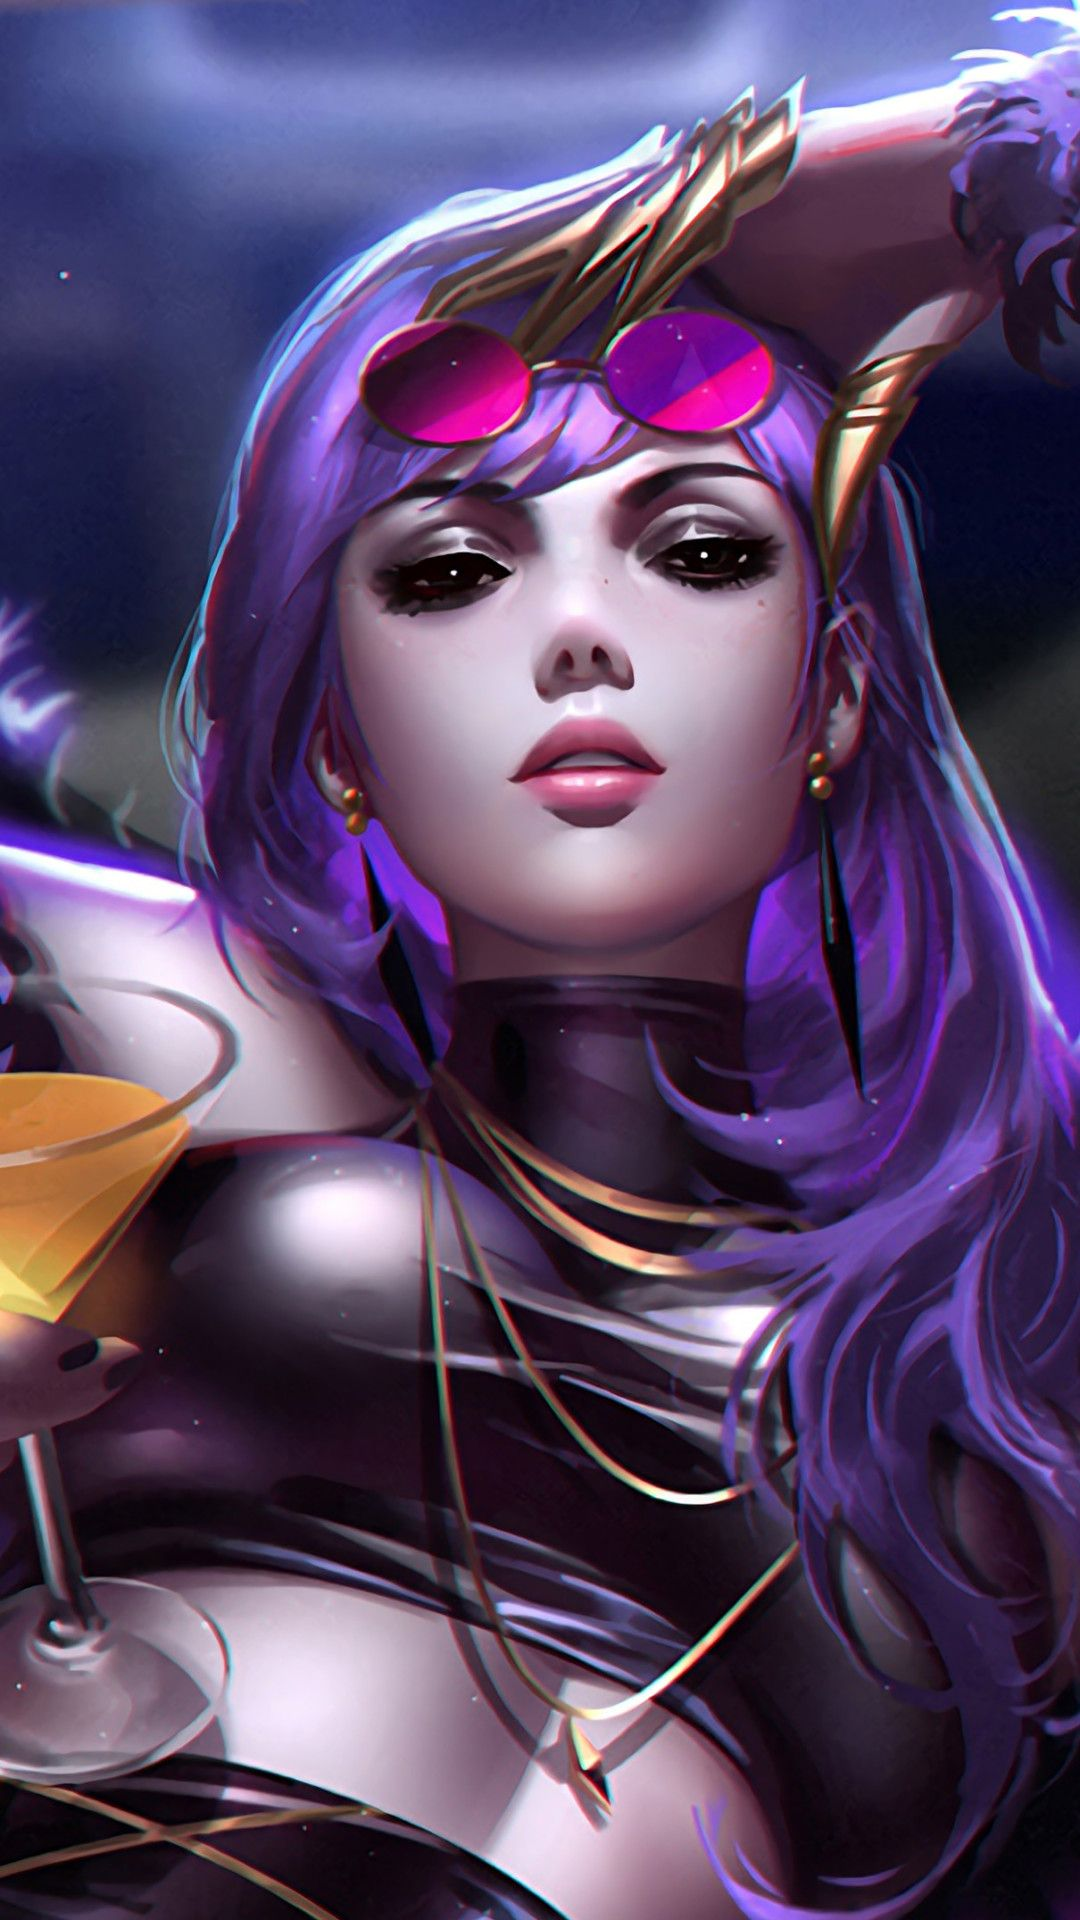 Kda Evelynn Lol Mobile Wallpaper Iphone Android Samsung Pixel Xiaomi Em 2020 Evelynn League Of Legends Papel De Parede Wallpaper Wallpaper